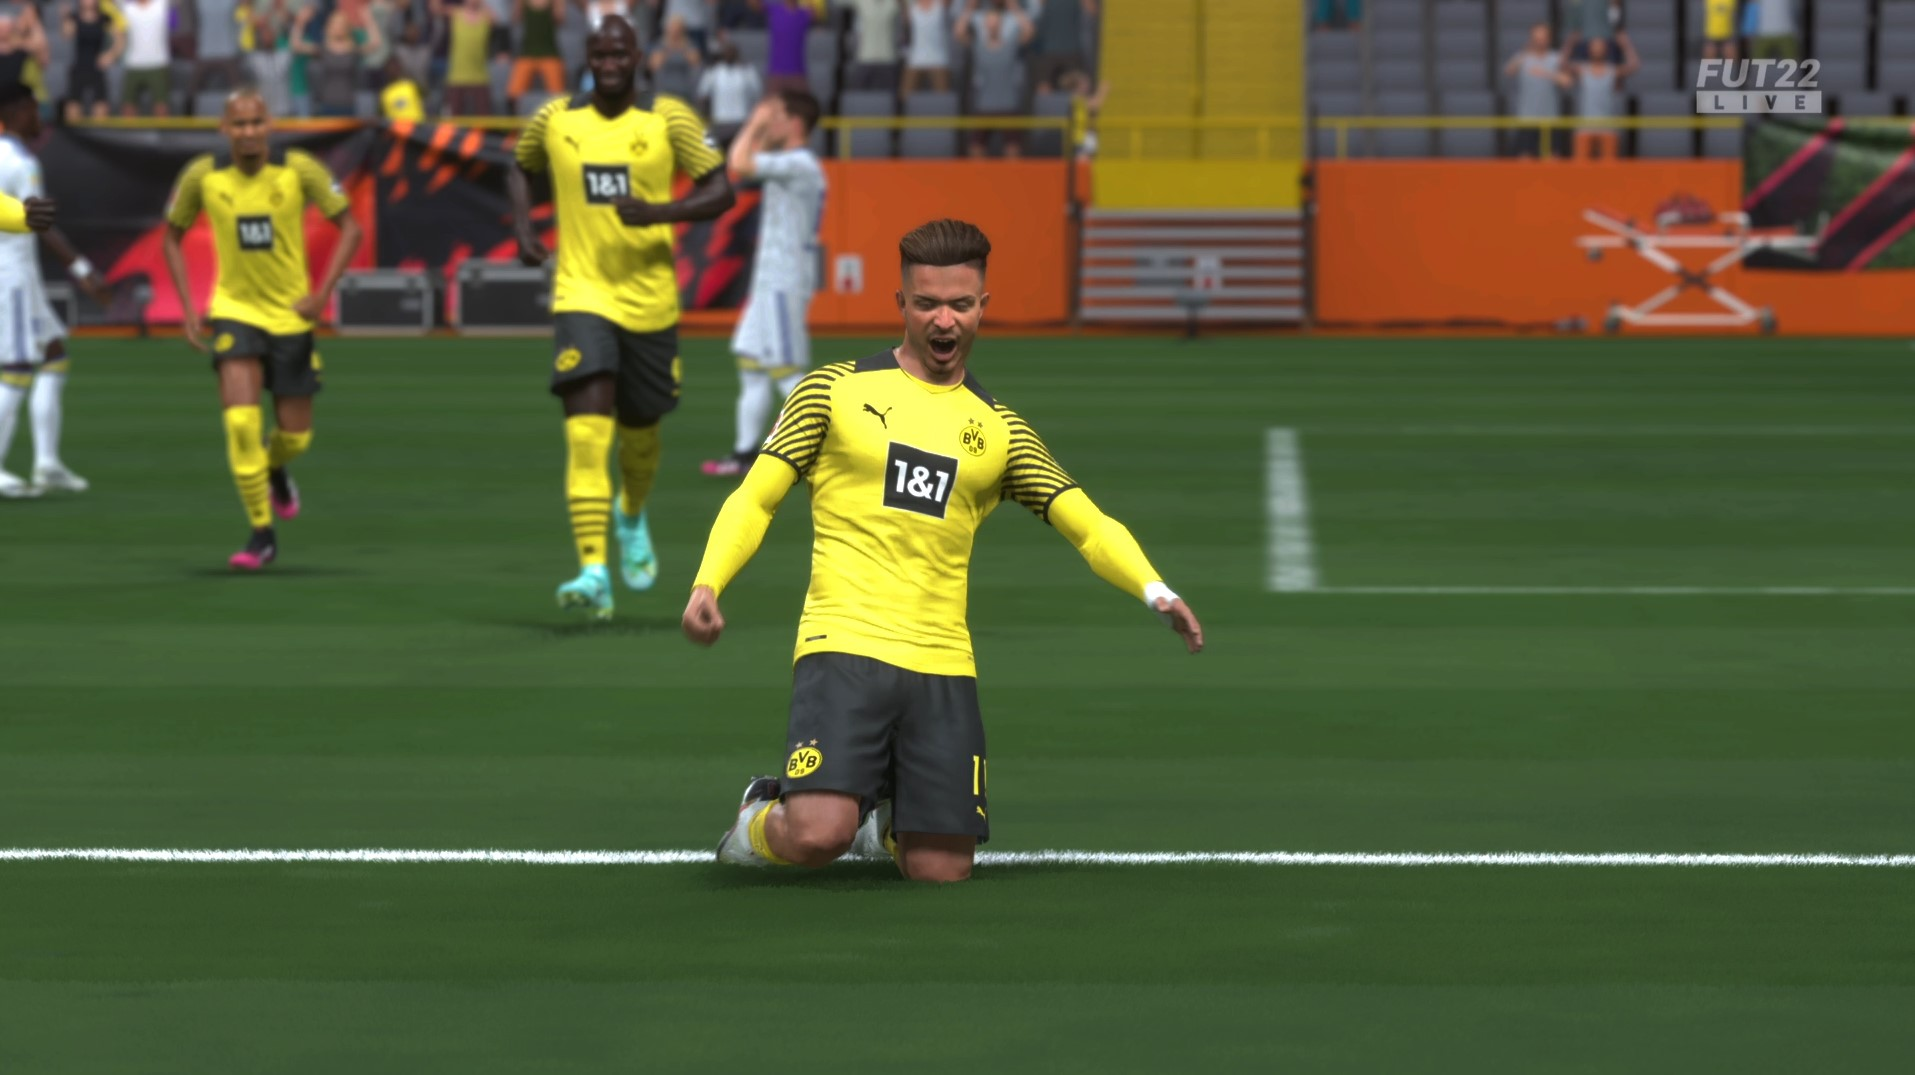 Review FIFA 22